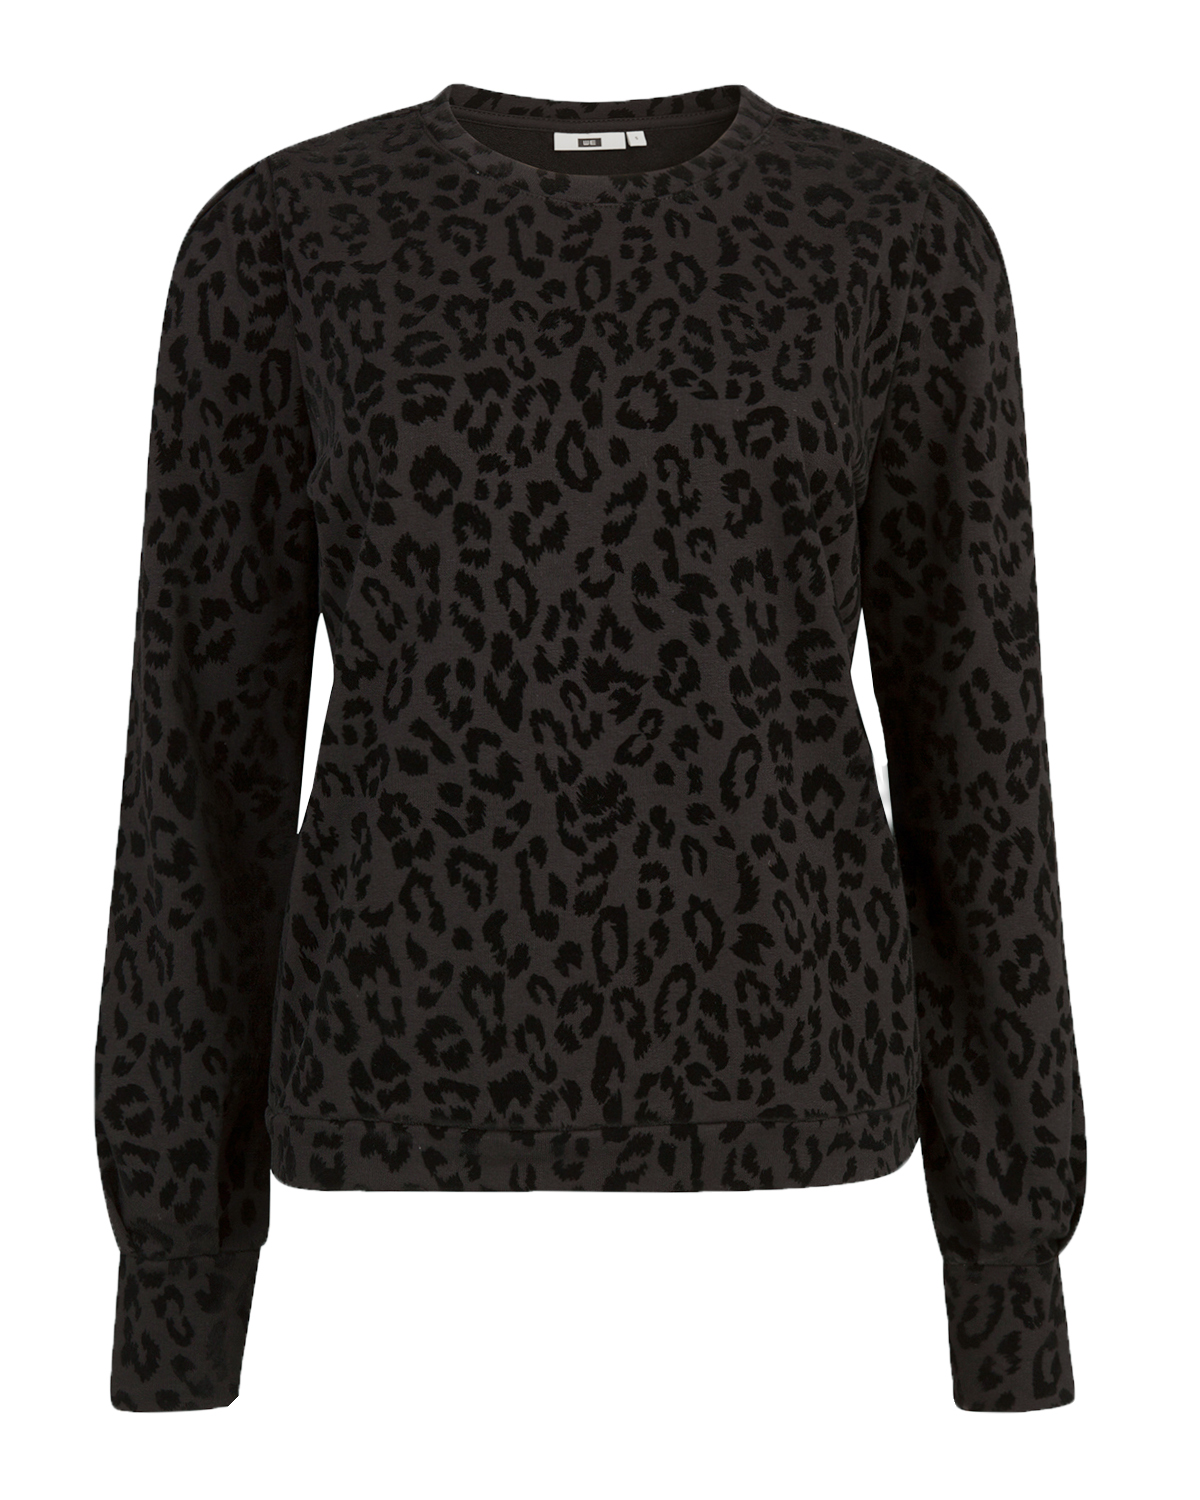 Dames leopard print sweater